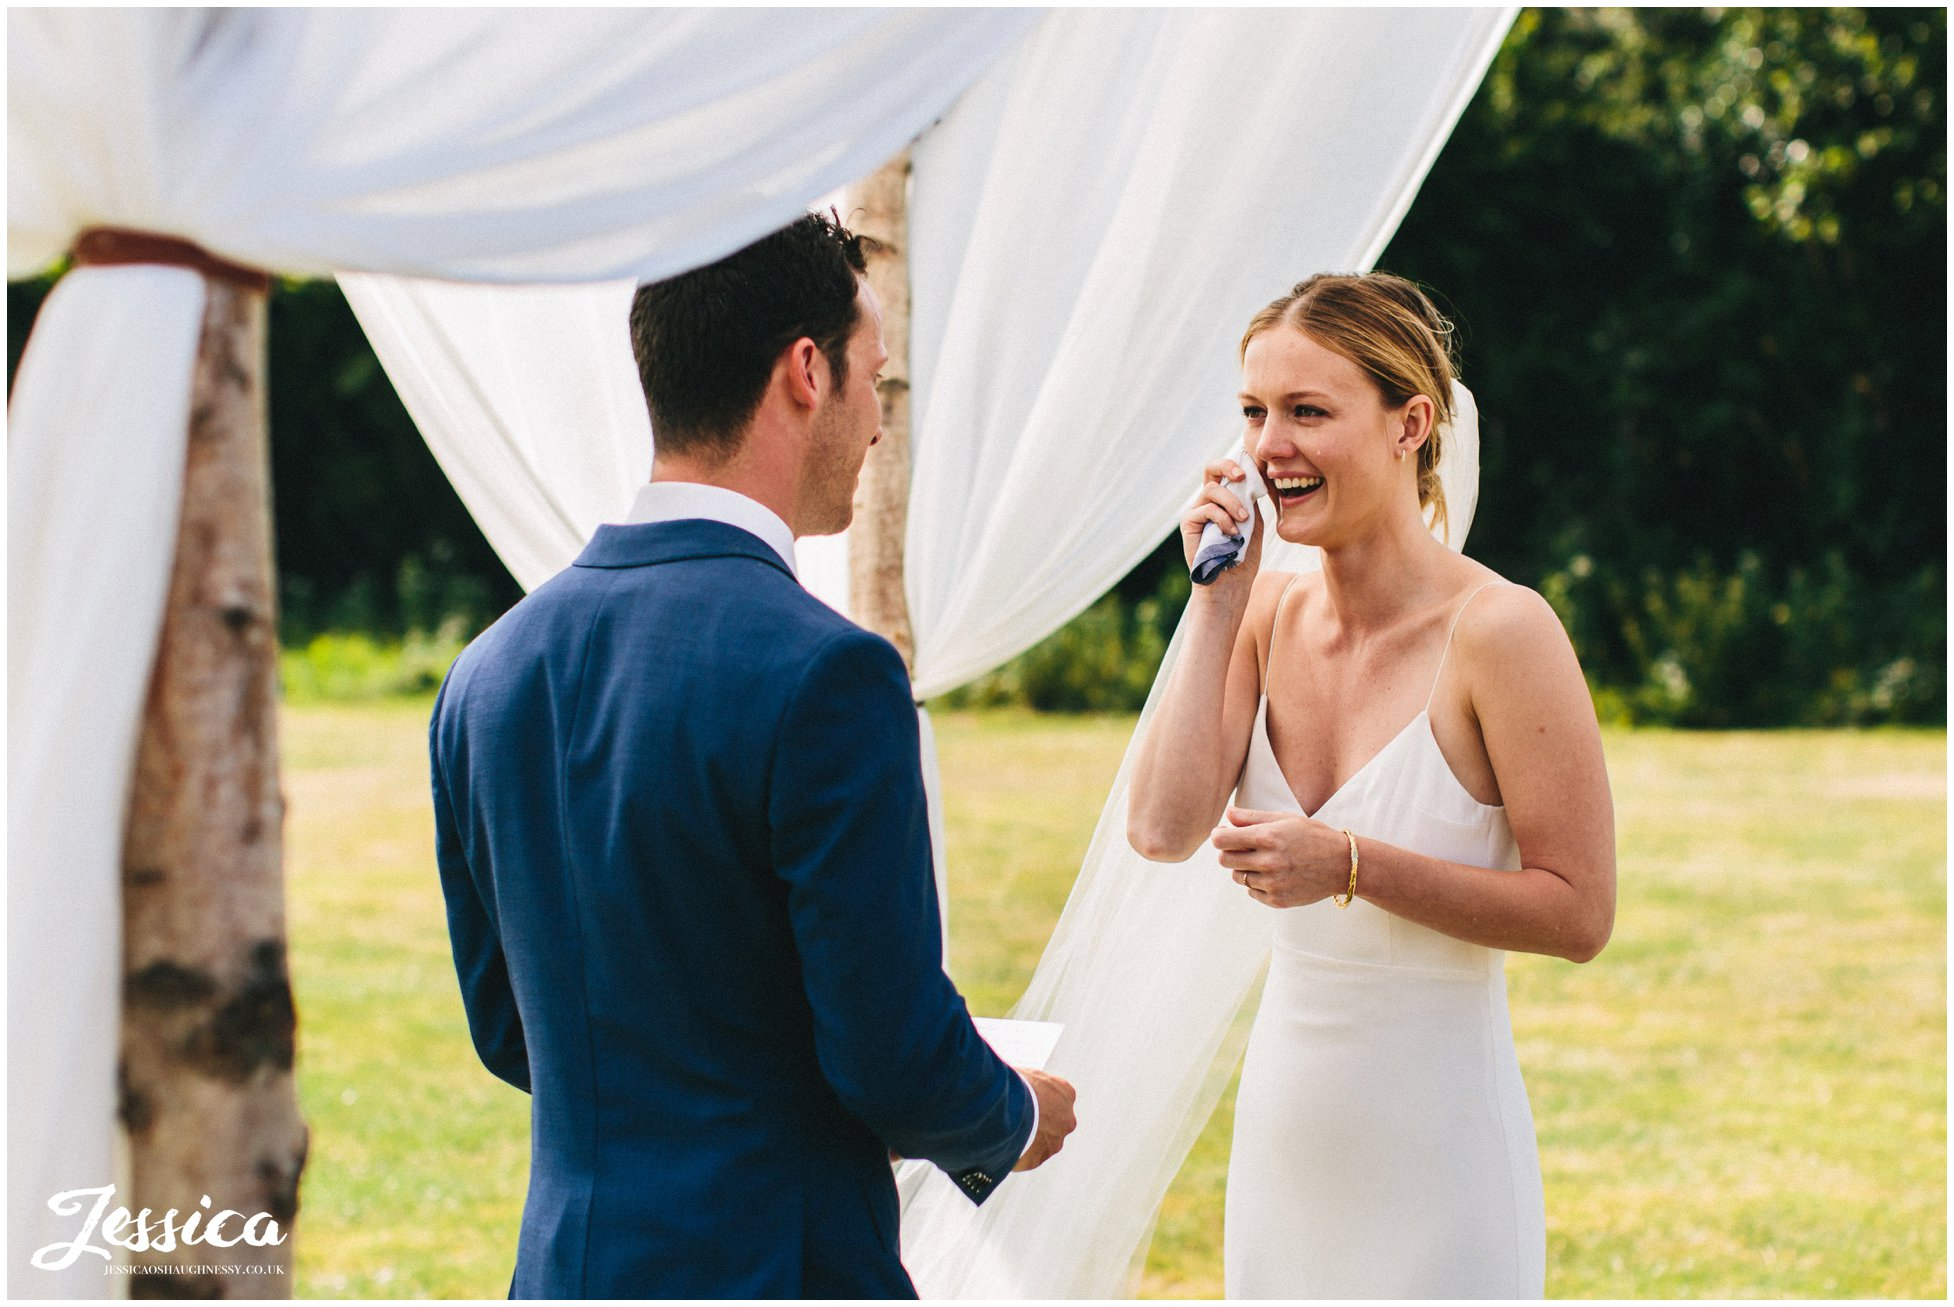 bride shed's a tear during the vow exchange